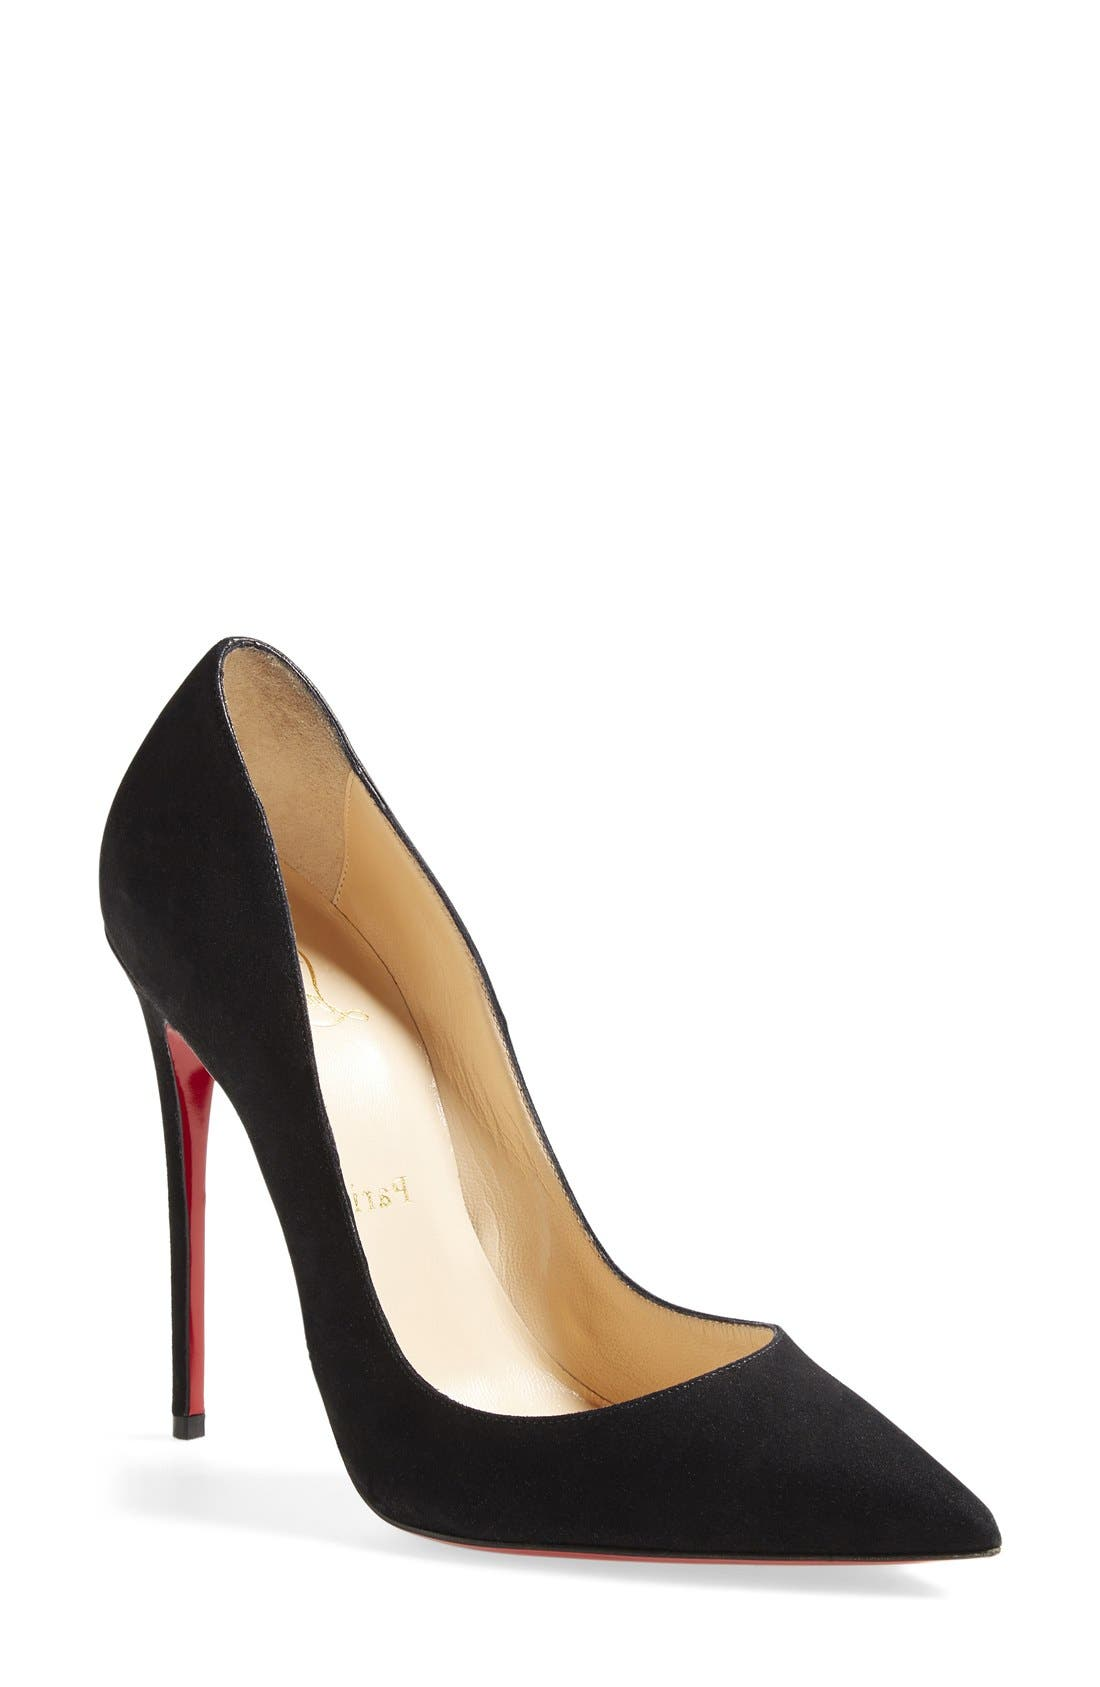 CHRISTIAN LOUBOUTIN,                             'So Kate' Pointy Toe Suede Pump,                             Main thumbnail 1, color,                             001